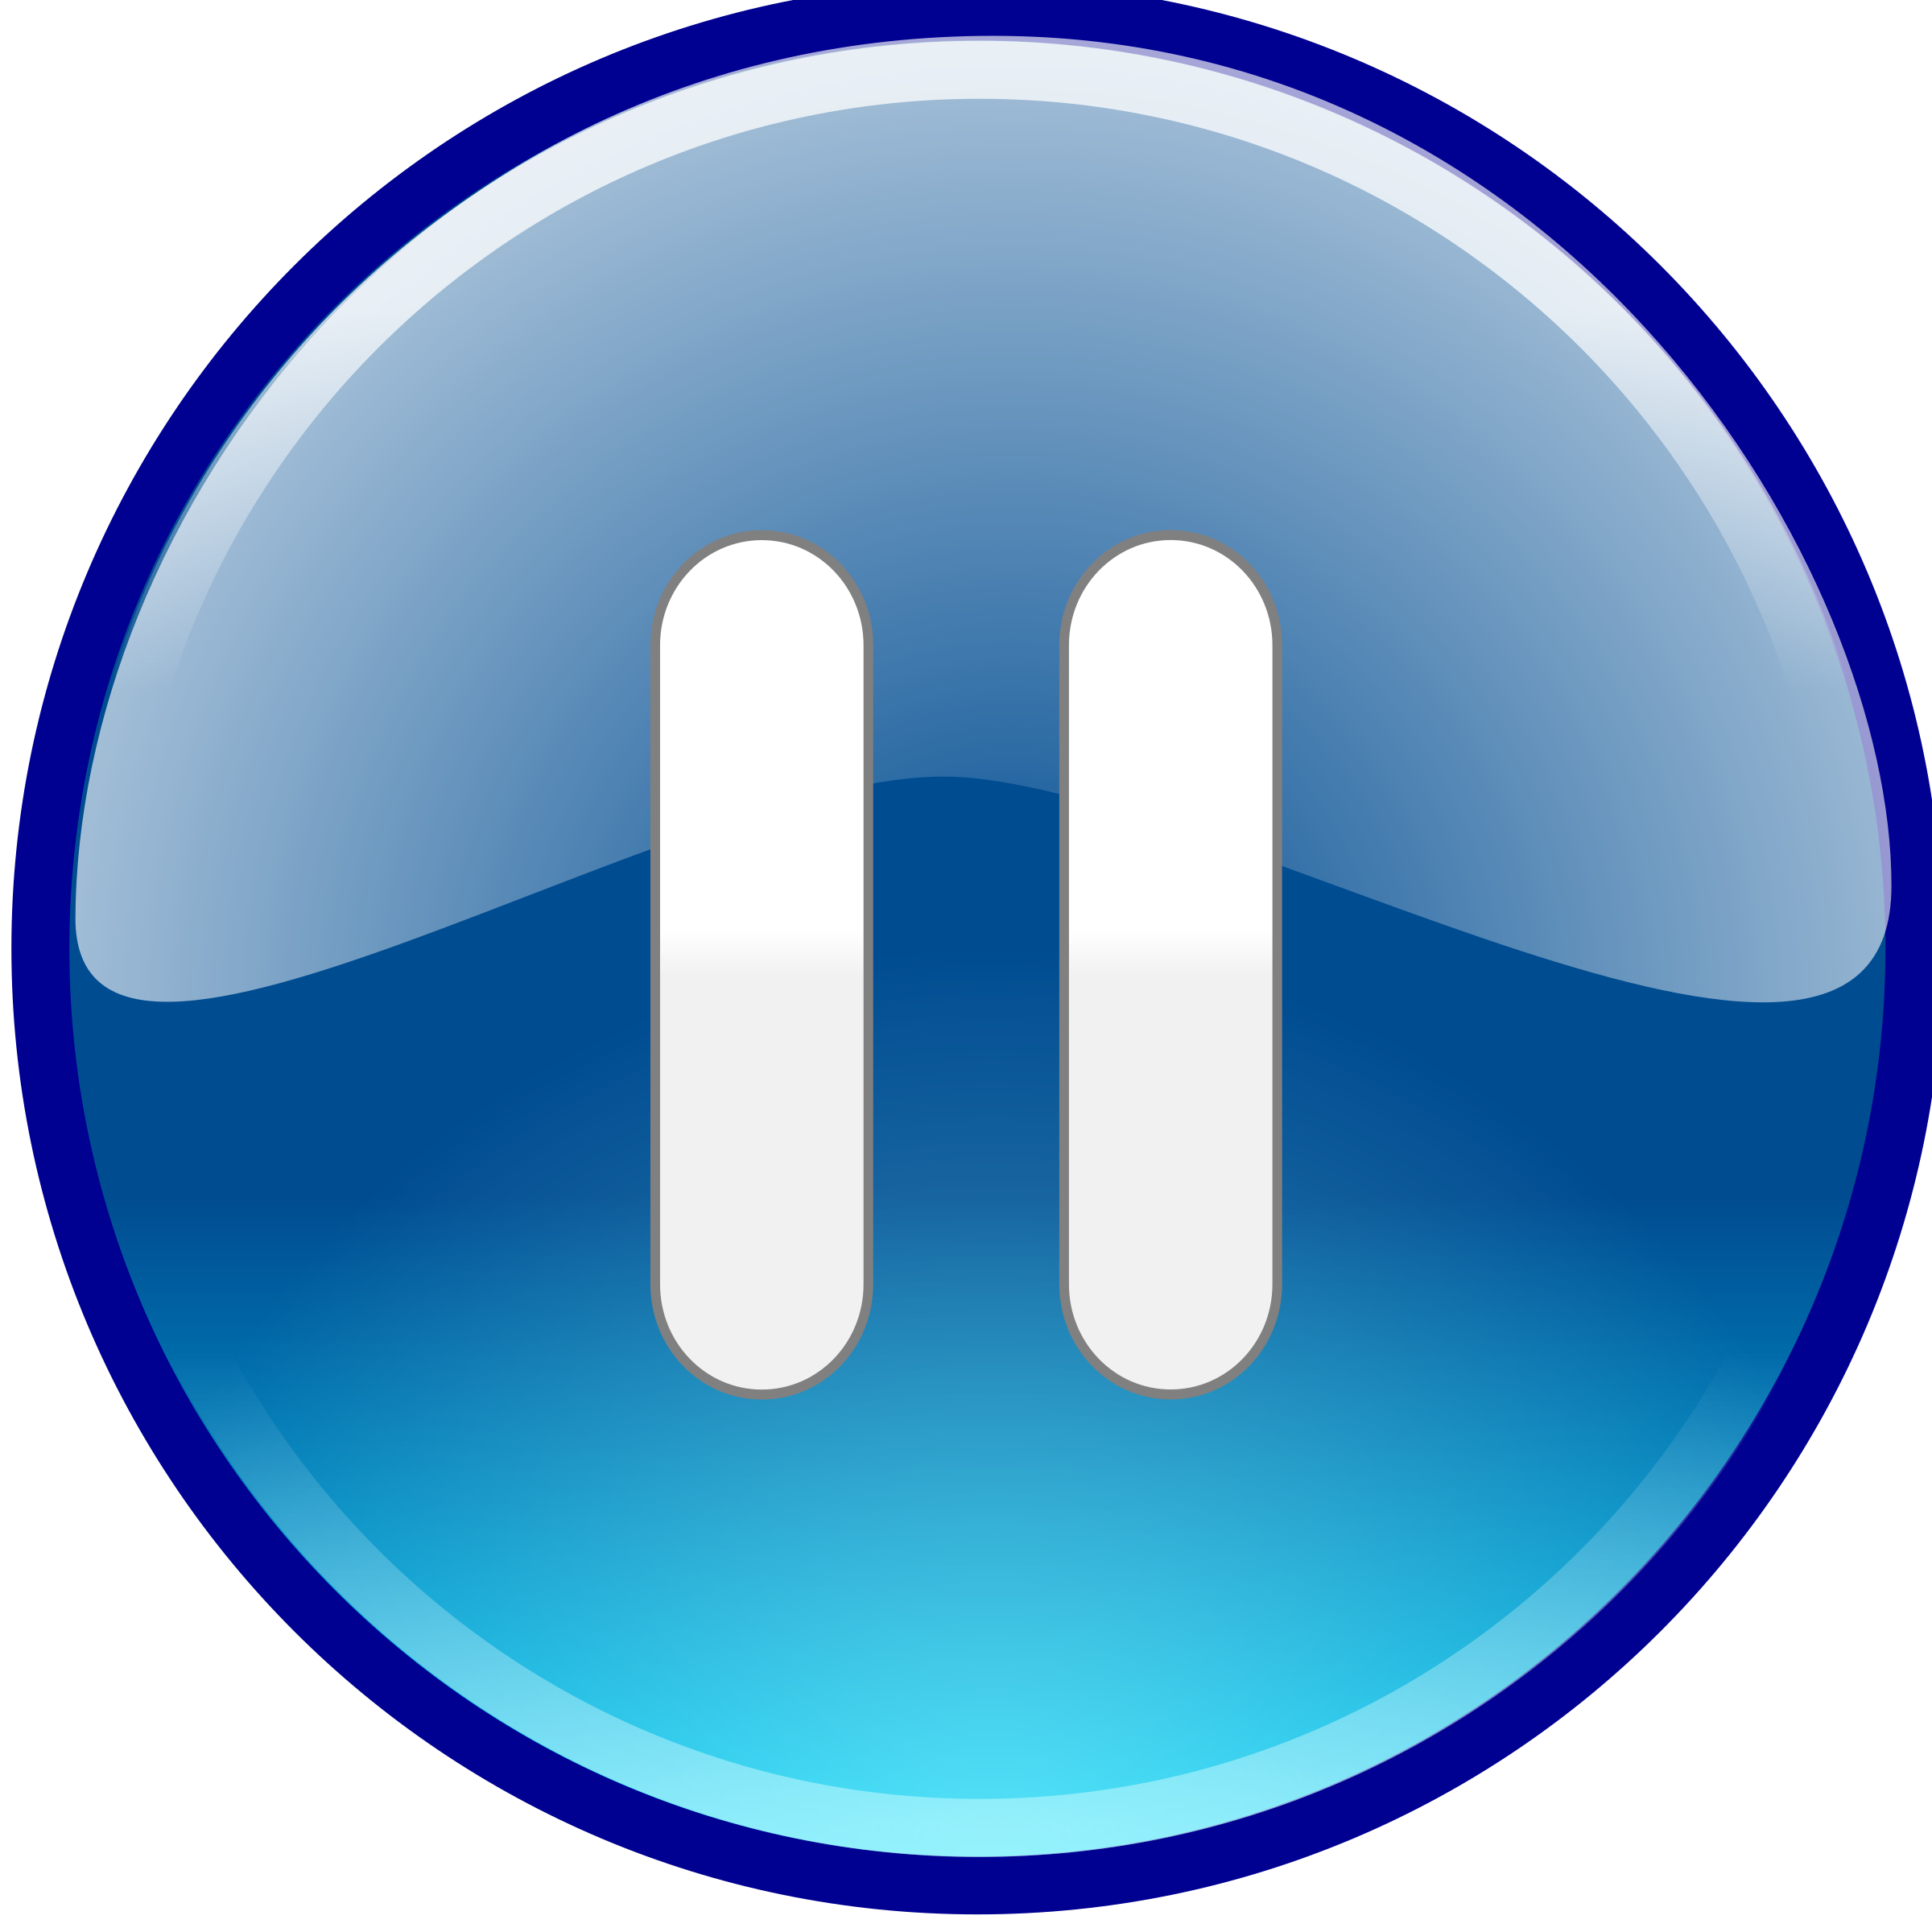 Play pause icon png. Windows media player button